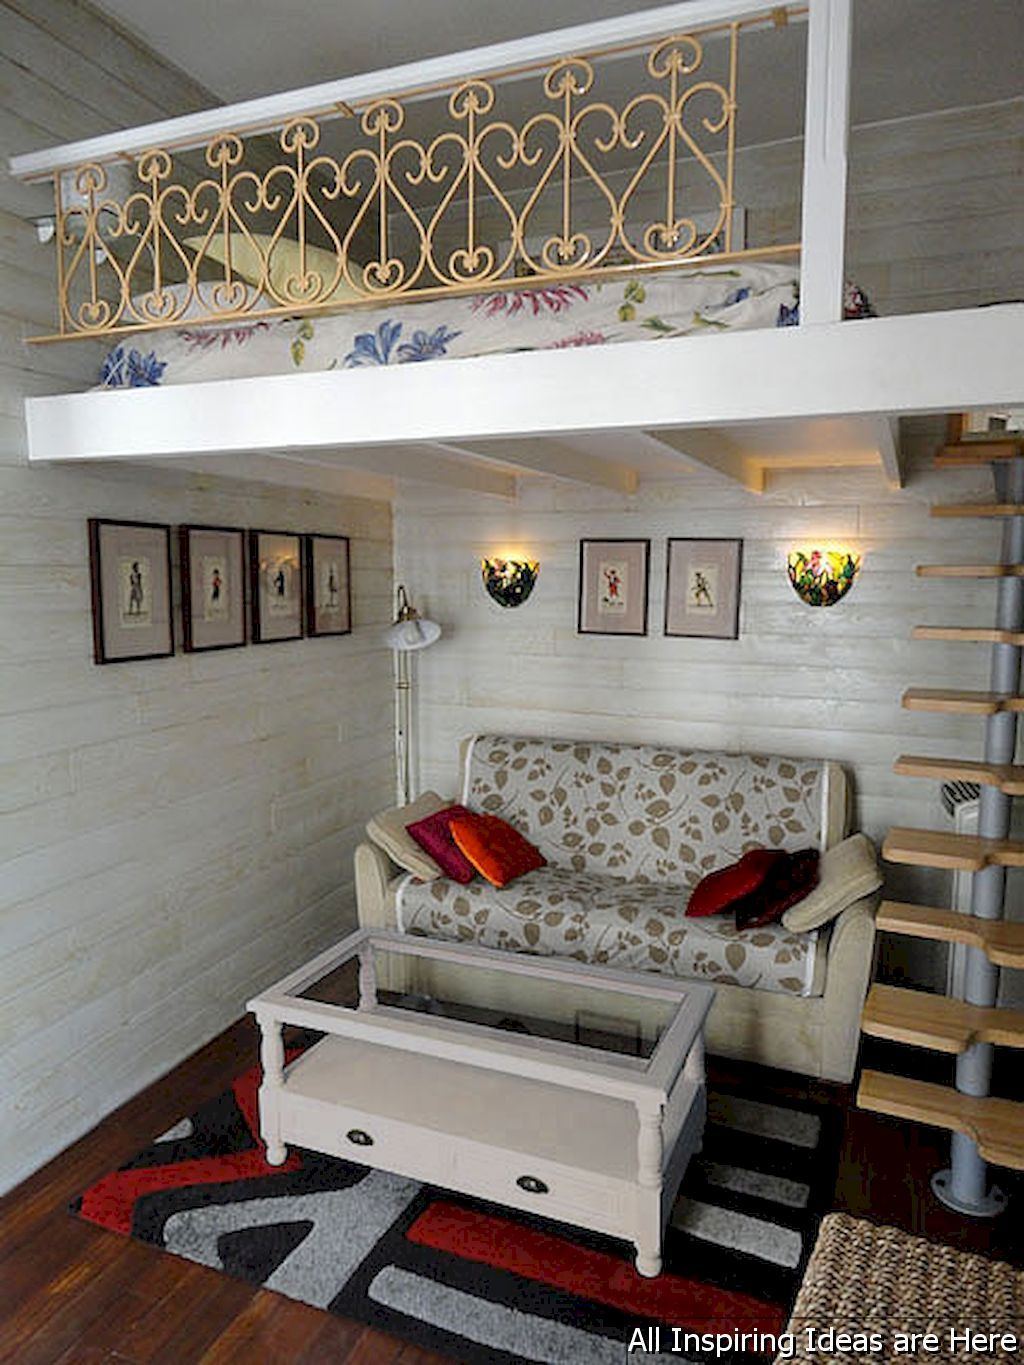 Loft bedroom staircase  Awesome Small Loft Bedroom Ideas   Small loft bedroom Small